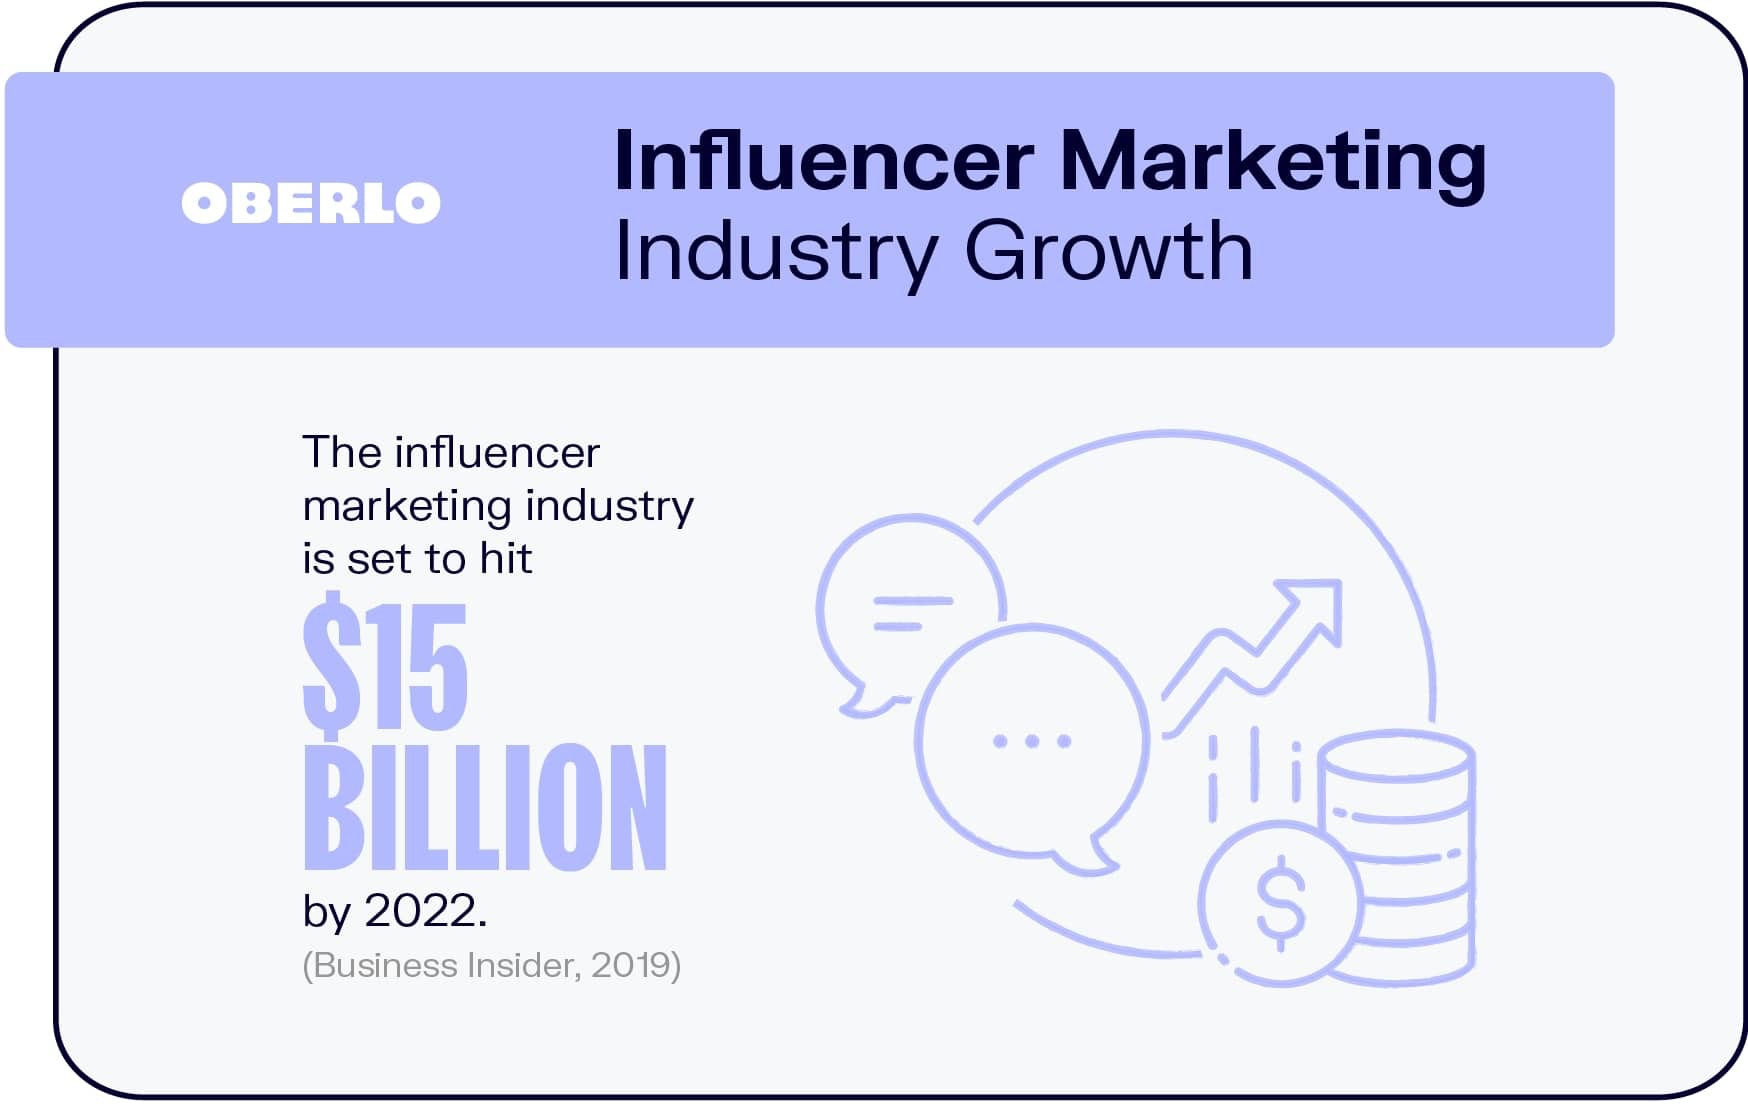 Influencer Marketing Industry Growth